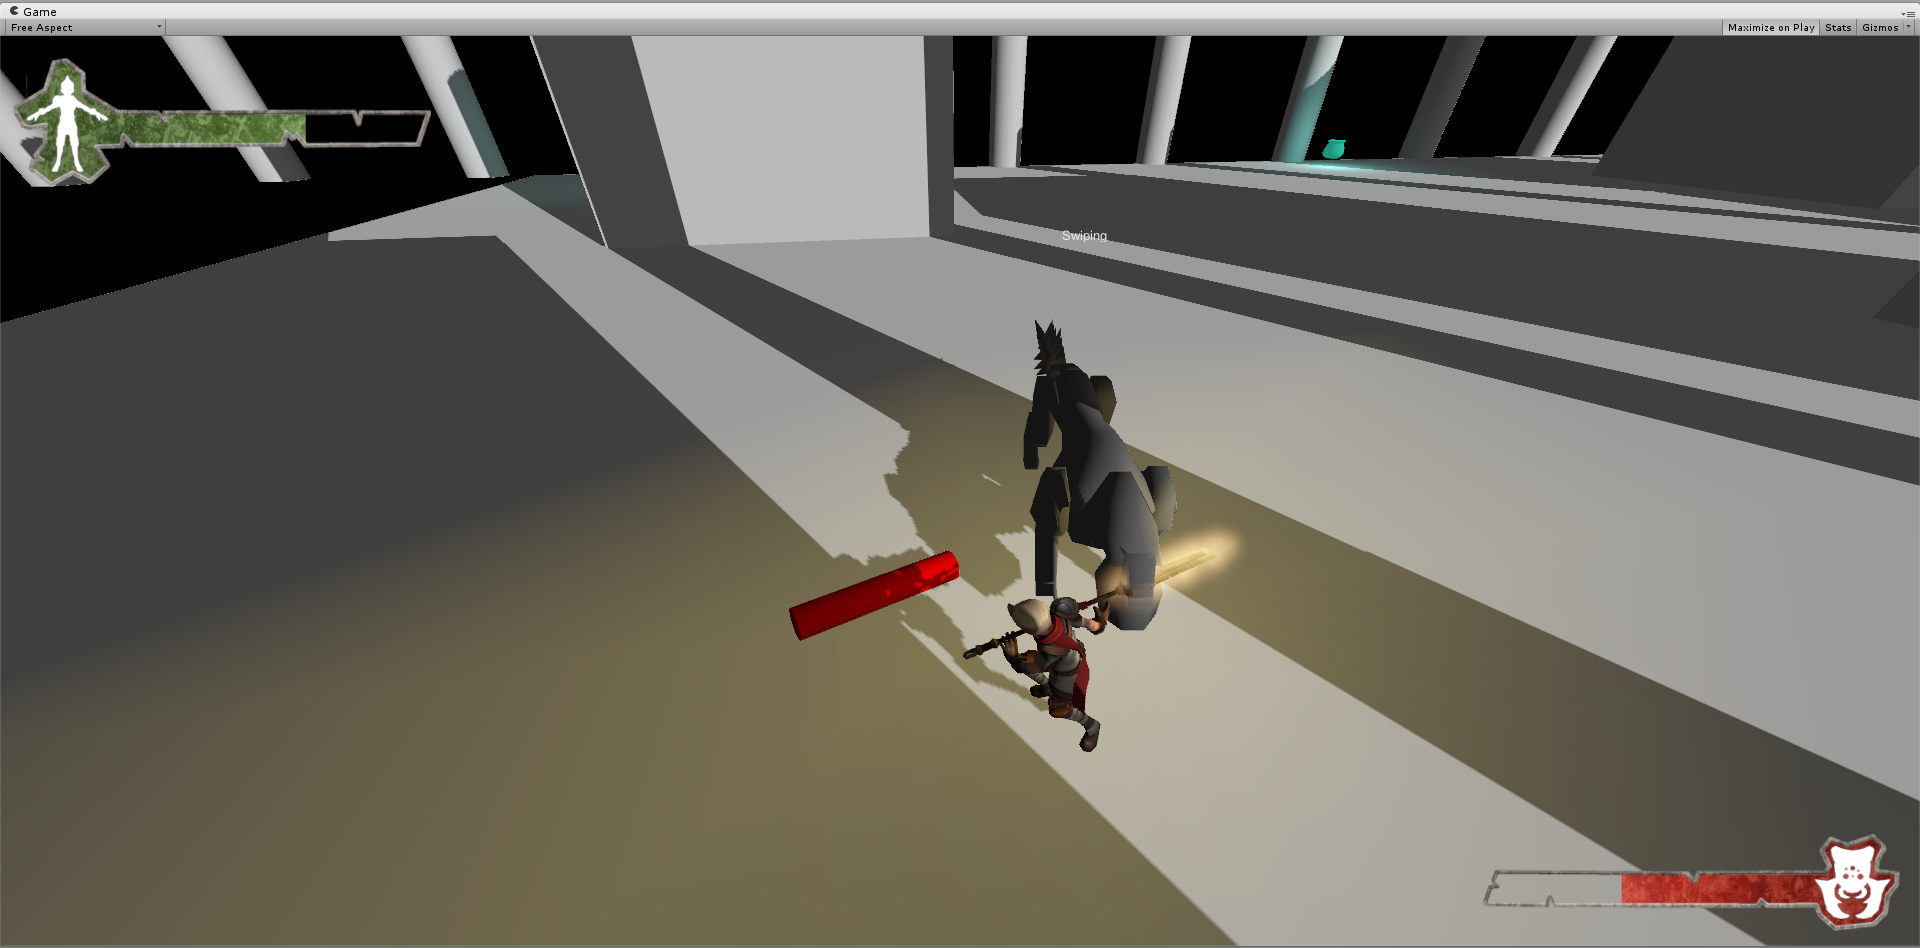 I liked the addition of the shadows, even just in the test dev scene.